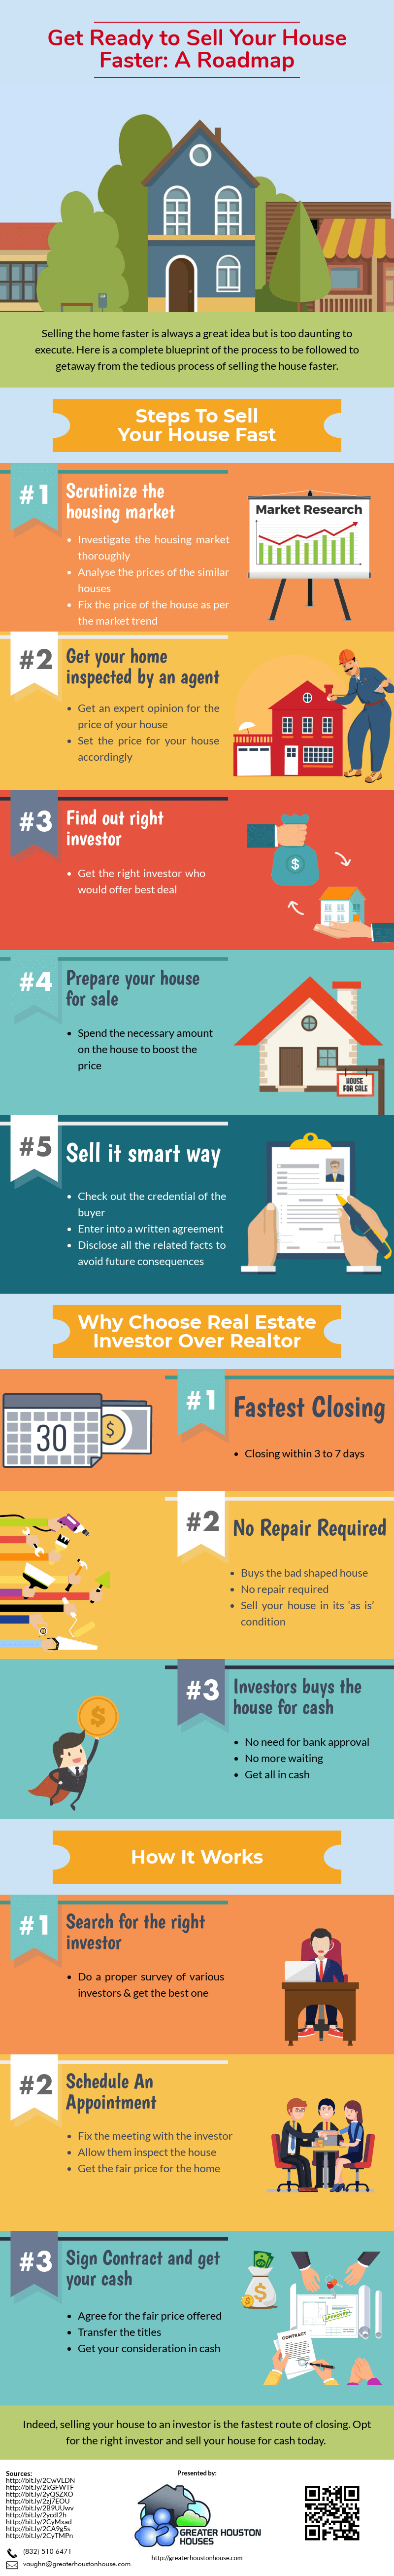 Get Ready to Sell Your House Faster-infographic-plaza